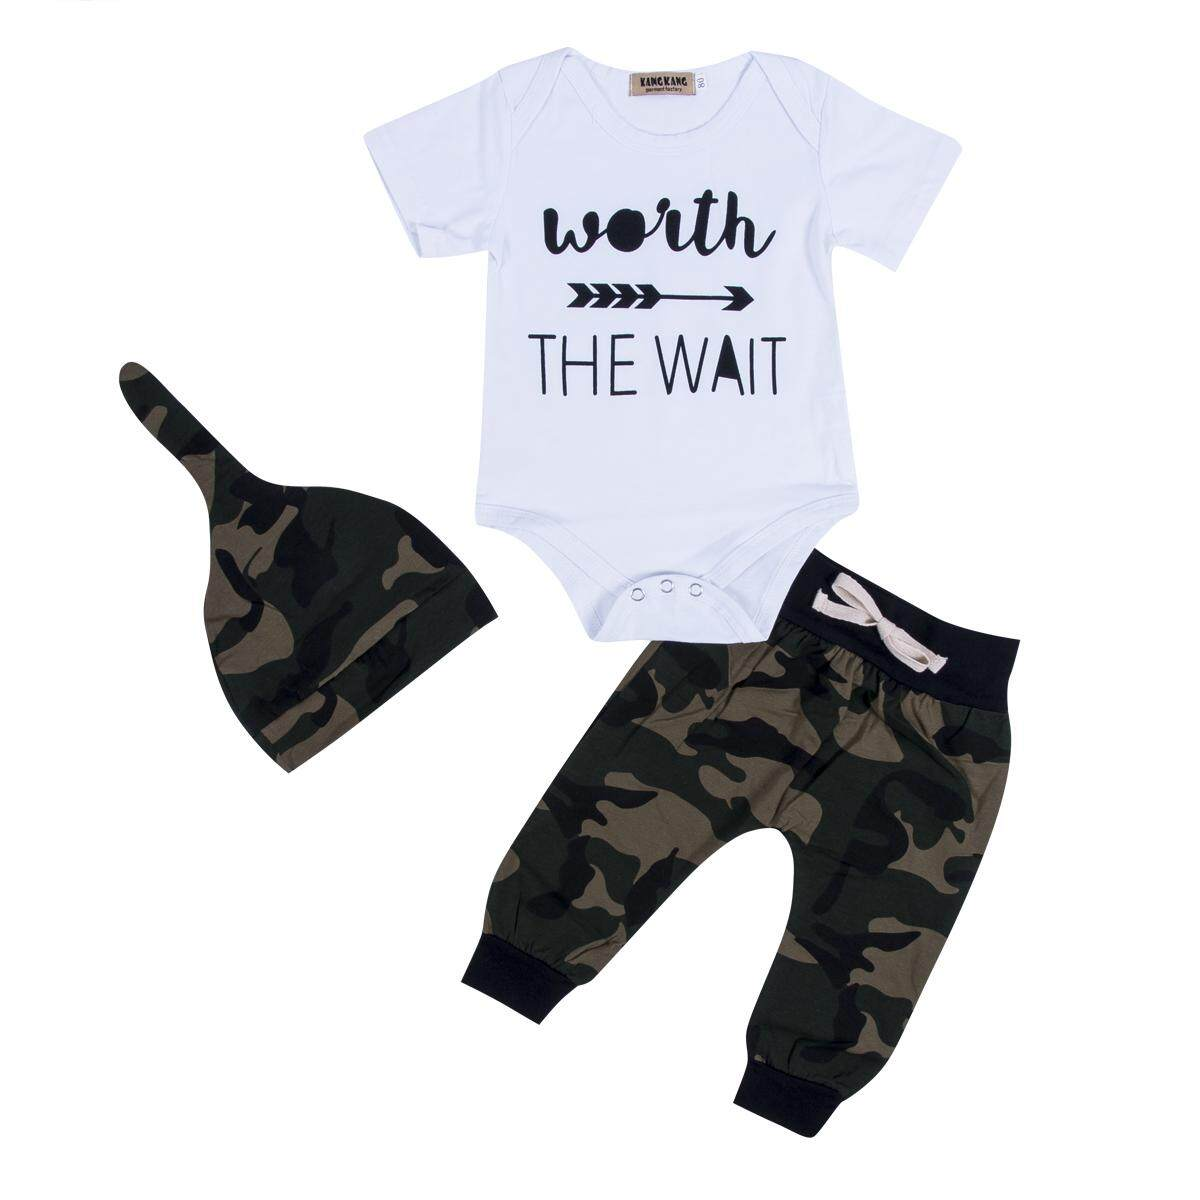 a63a8be6 Camouflage Newborn Toddler Baby Boys Clothes Romper Bodysuit + Pants  Outfits Set